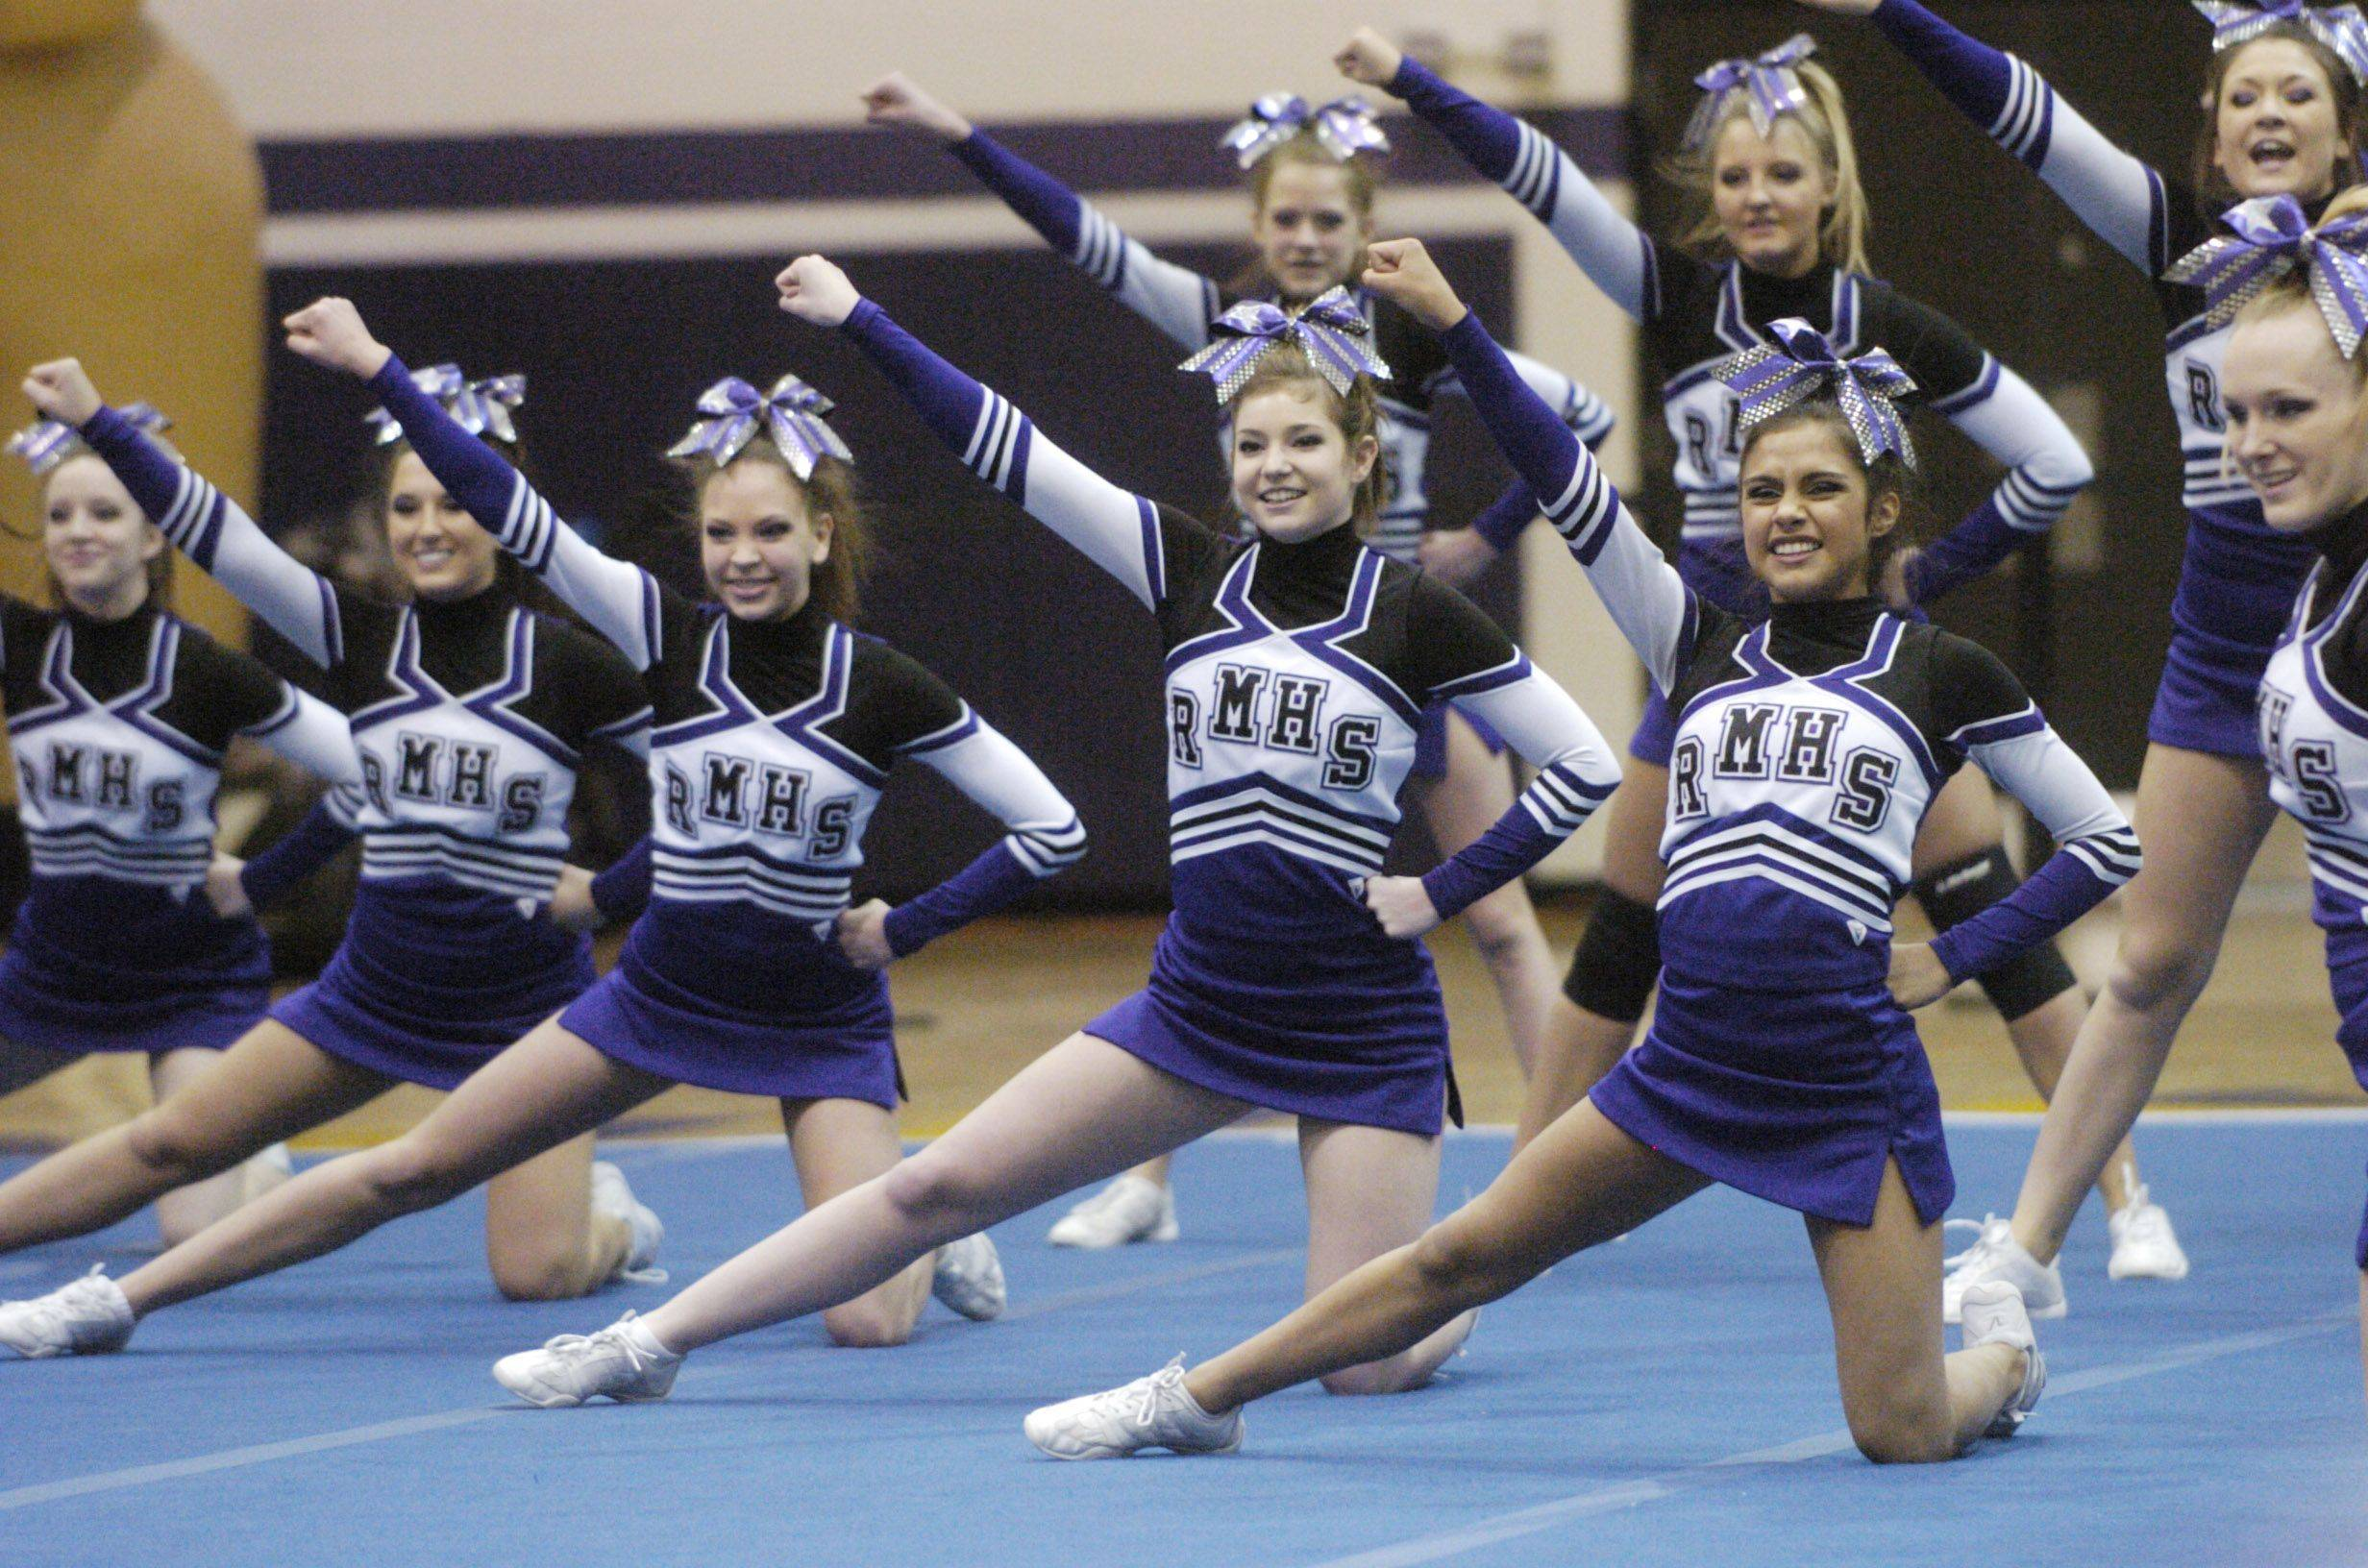 Rolling Meadows comeptes during Saturday's cheerleading sectional hosted by Rolling Meadows High School.